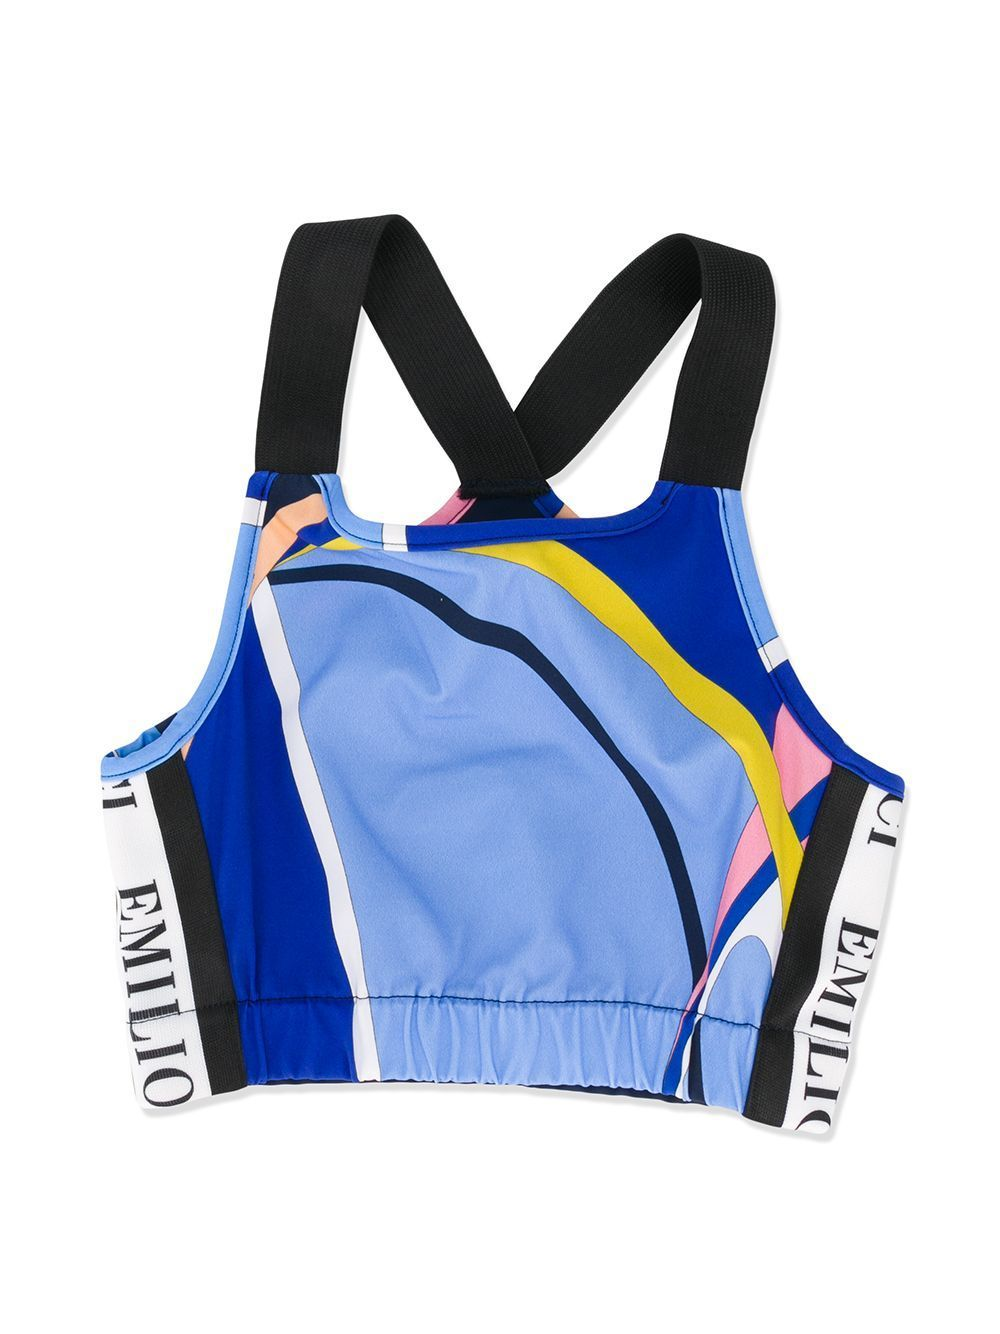 Emilio Pucci Blue & Pink Crop Top - Maison De Fashion